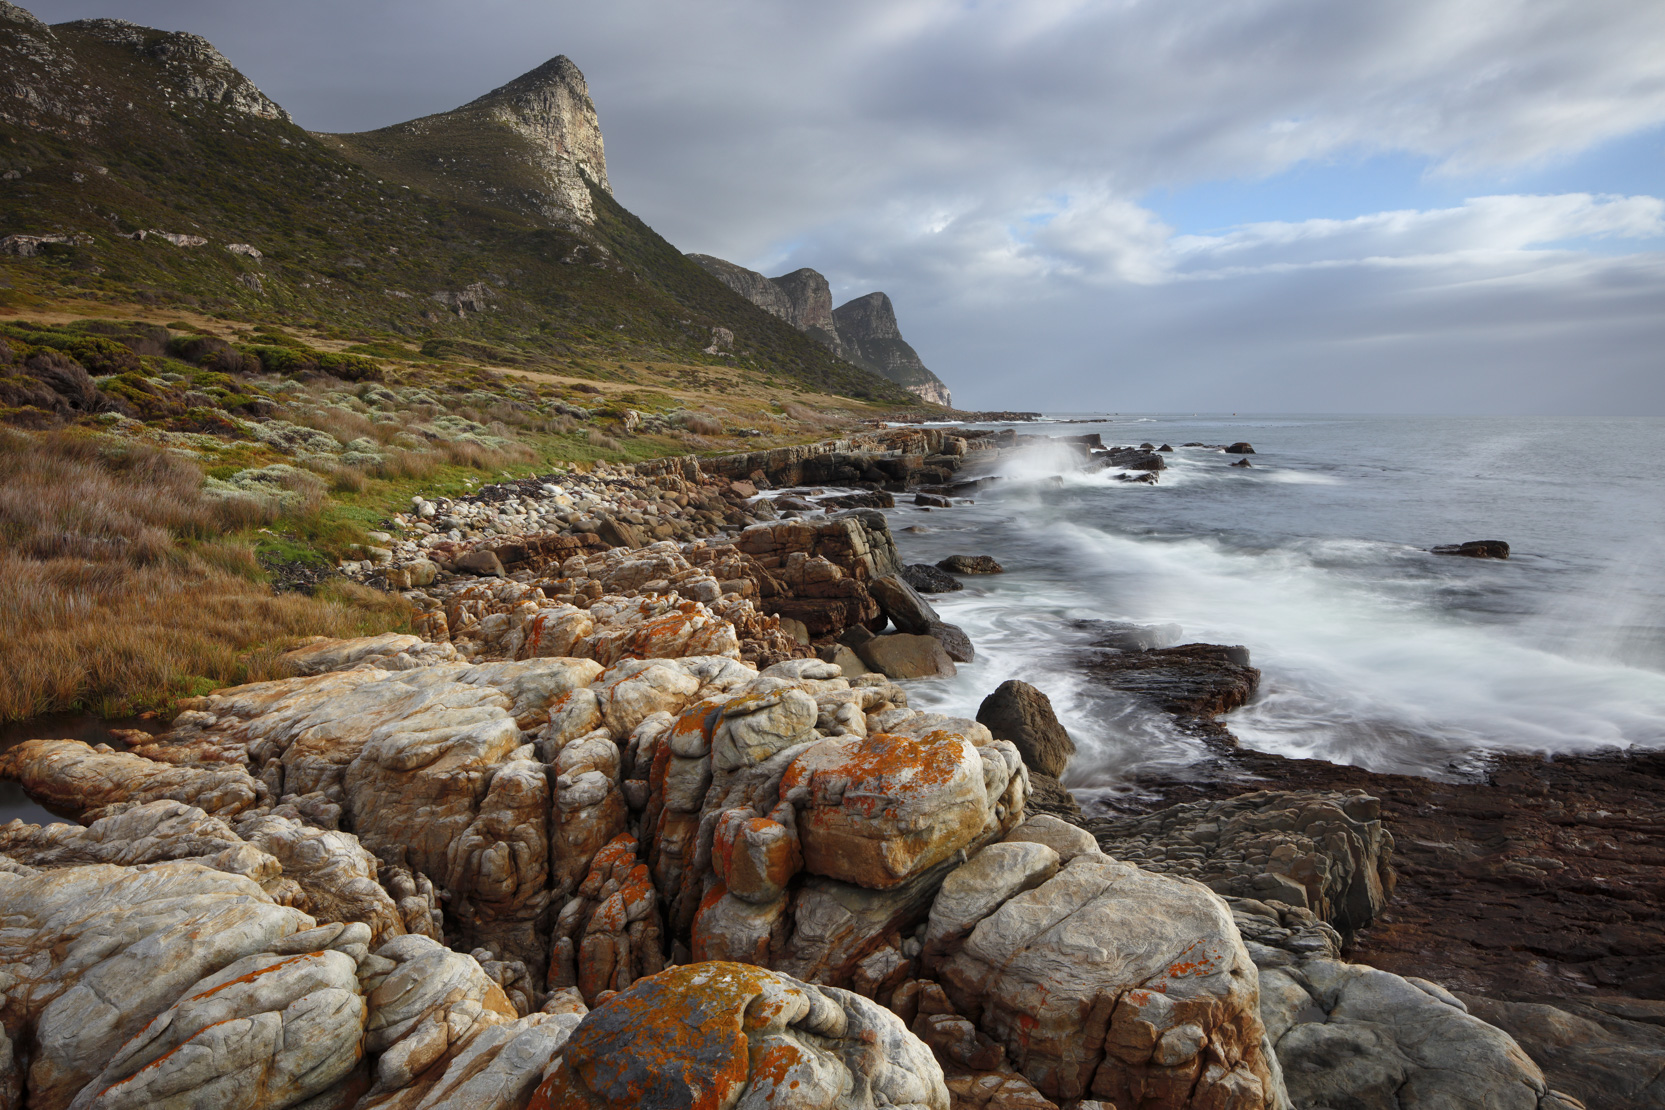 The Cape of Good Hope at Black Rocks, Cape Point, South Africa